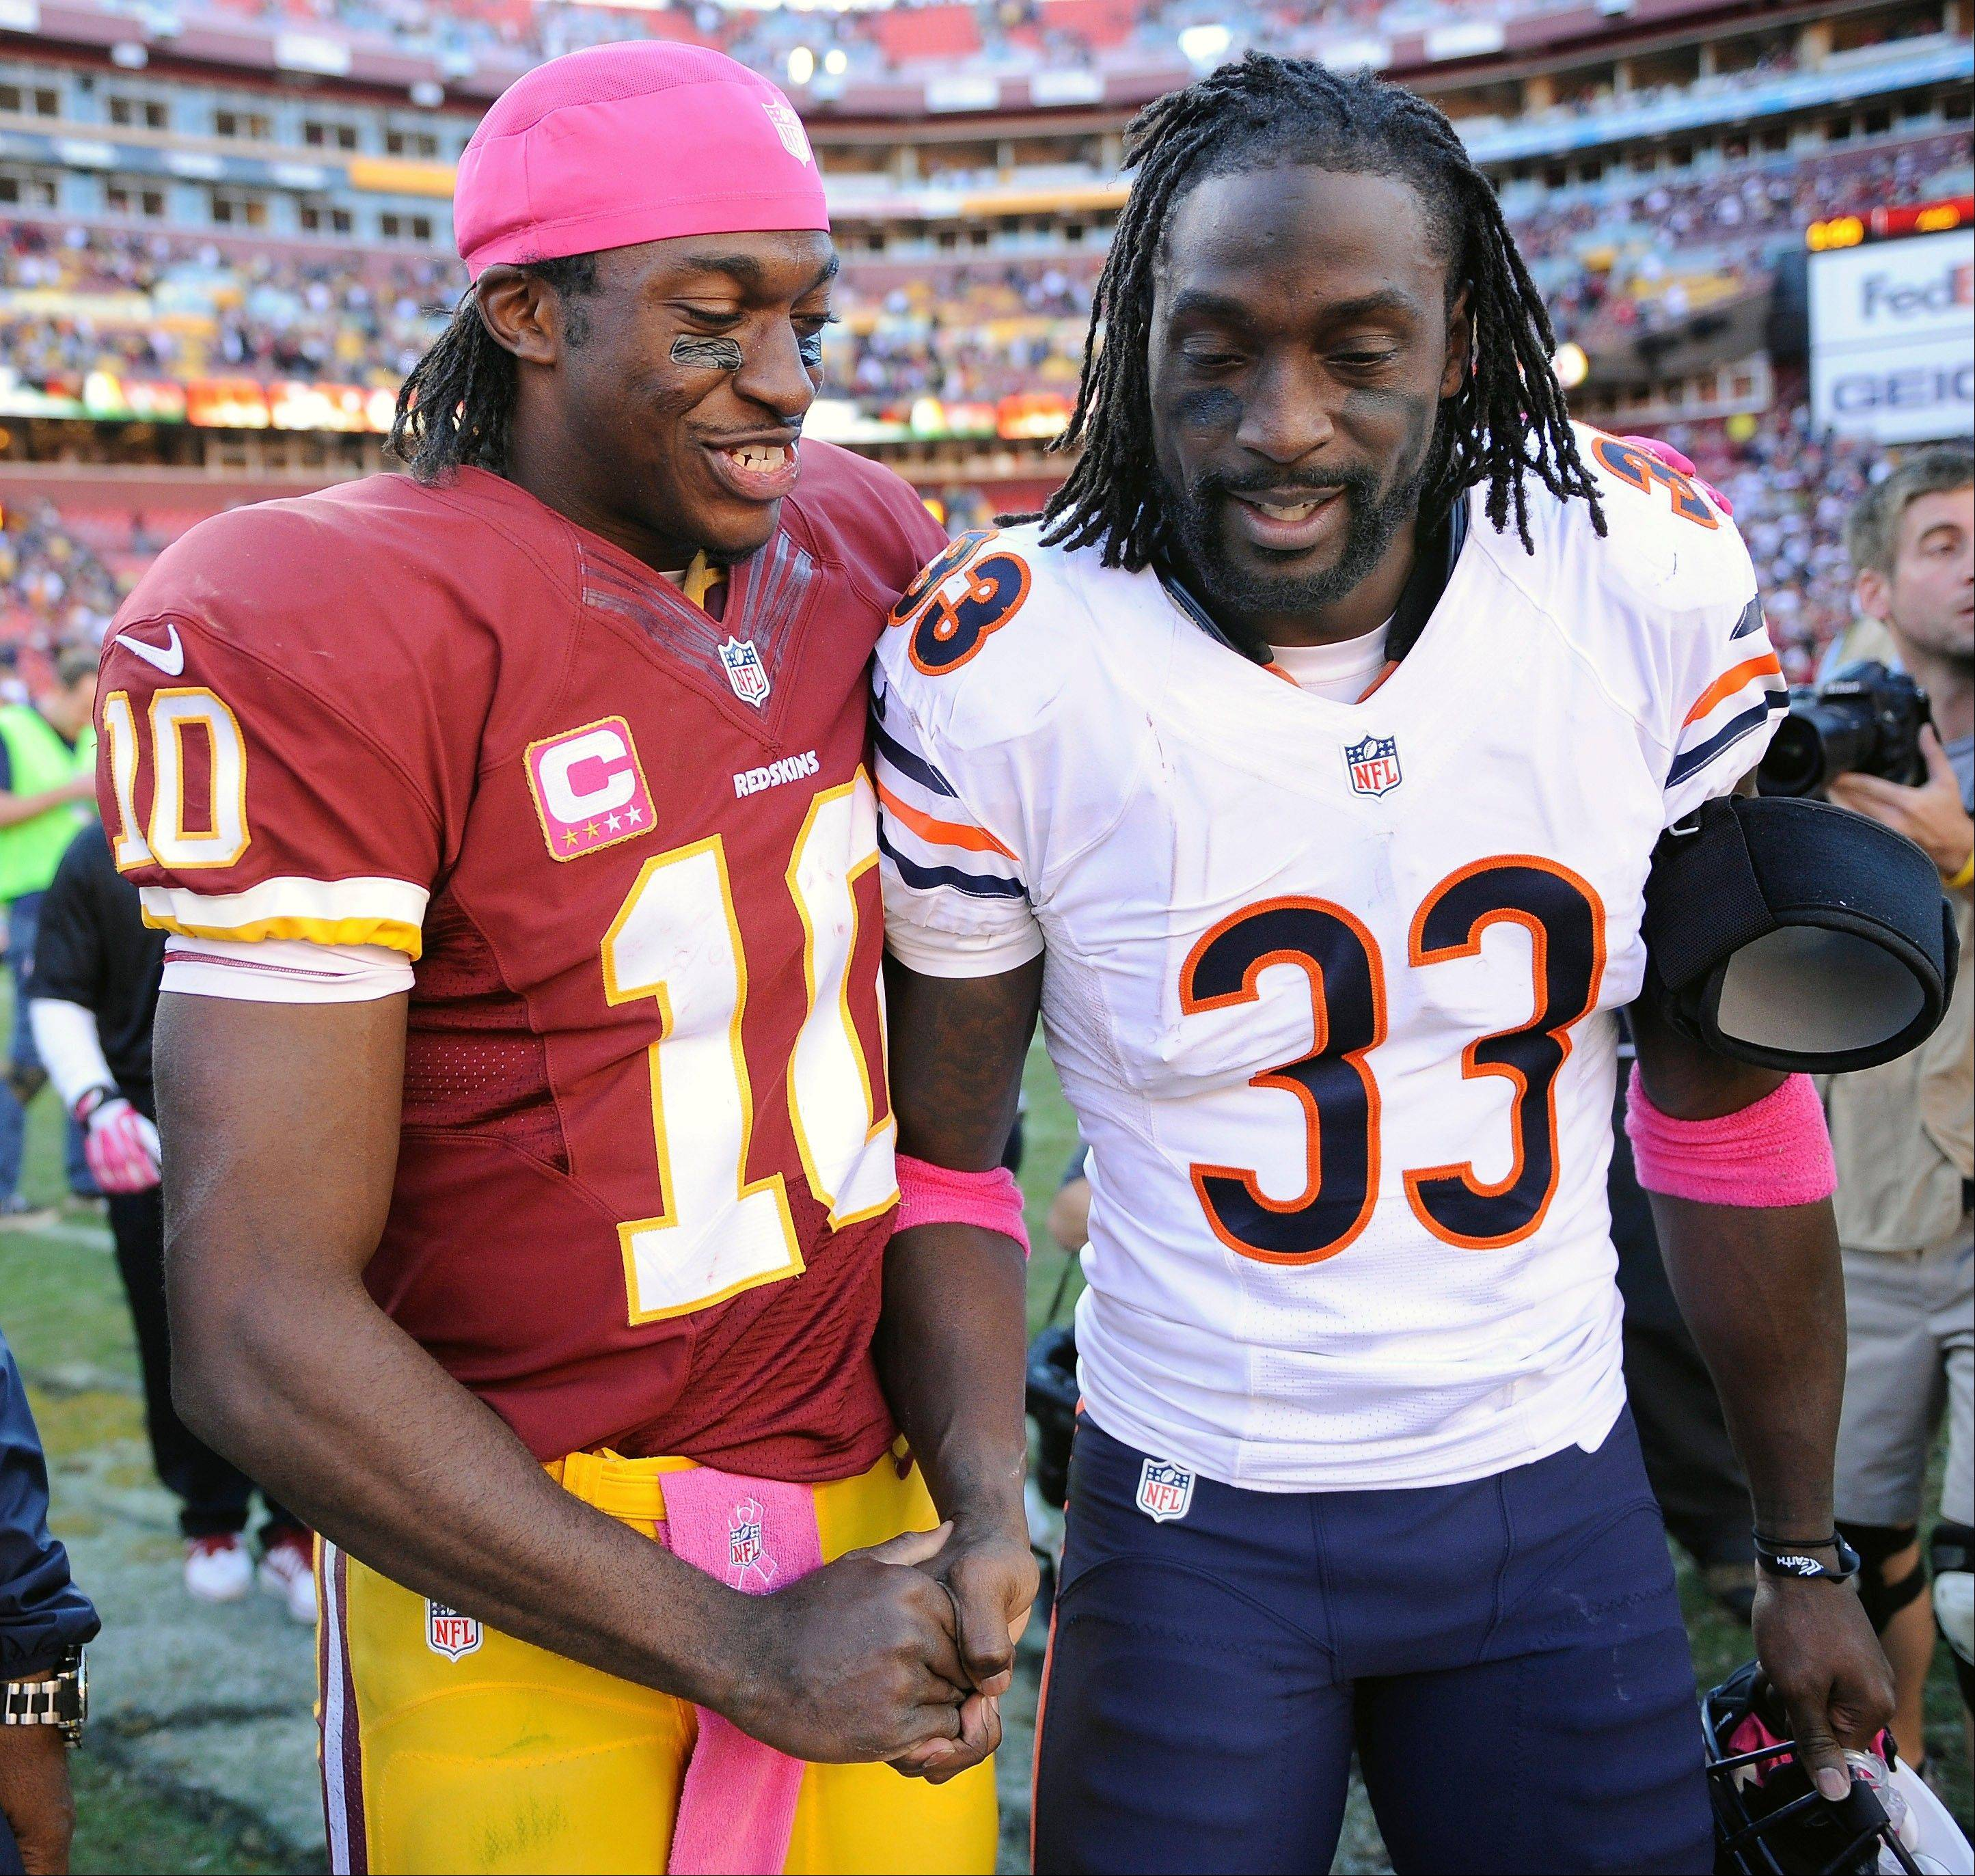 Washington quarterback Robert Griffin III, left, greets Charles Tillman after the Bears fell Sunday in Landover, Md.